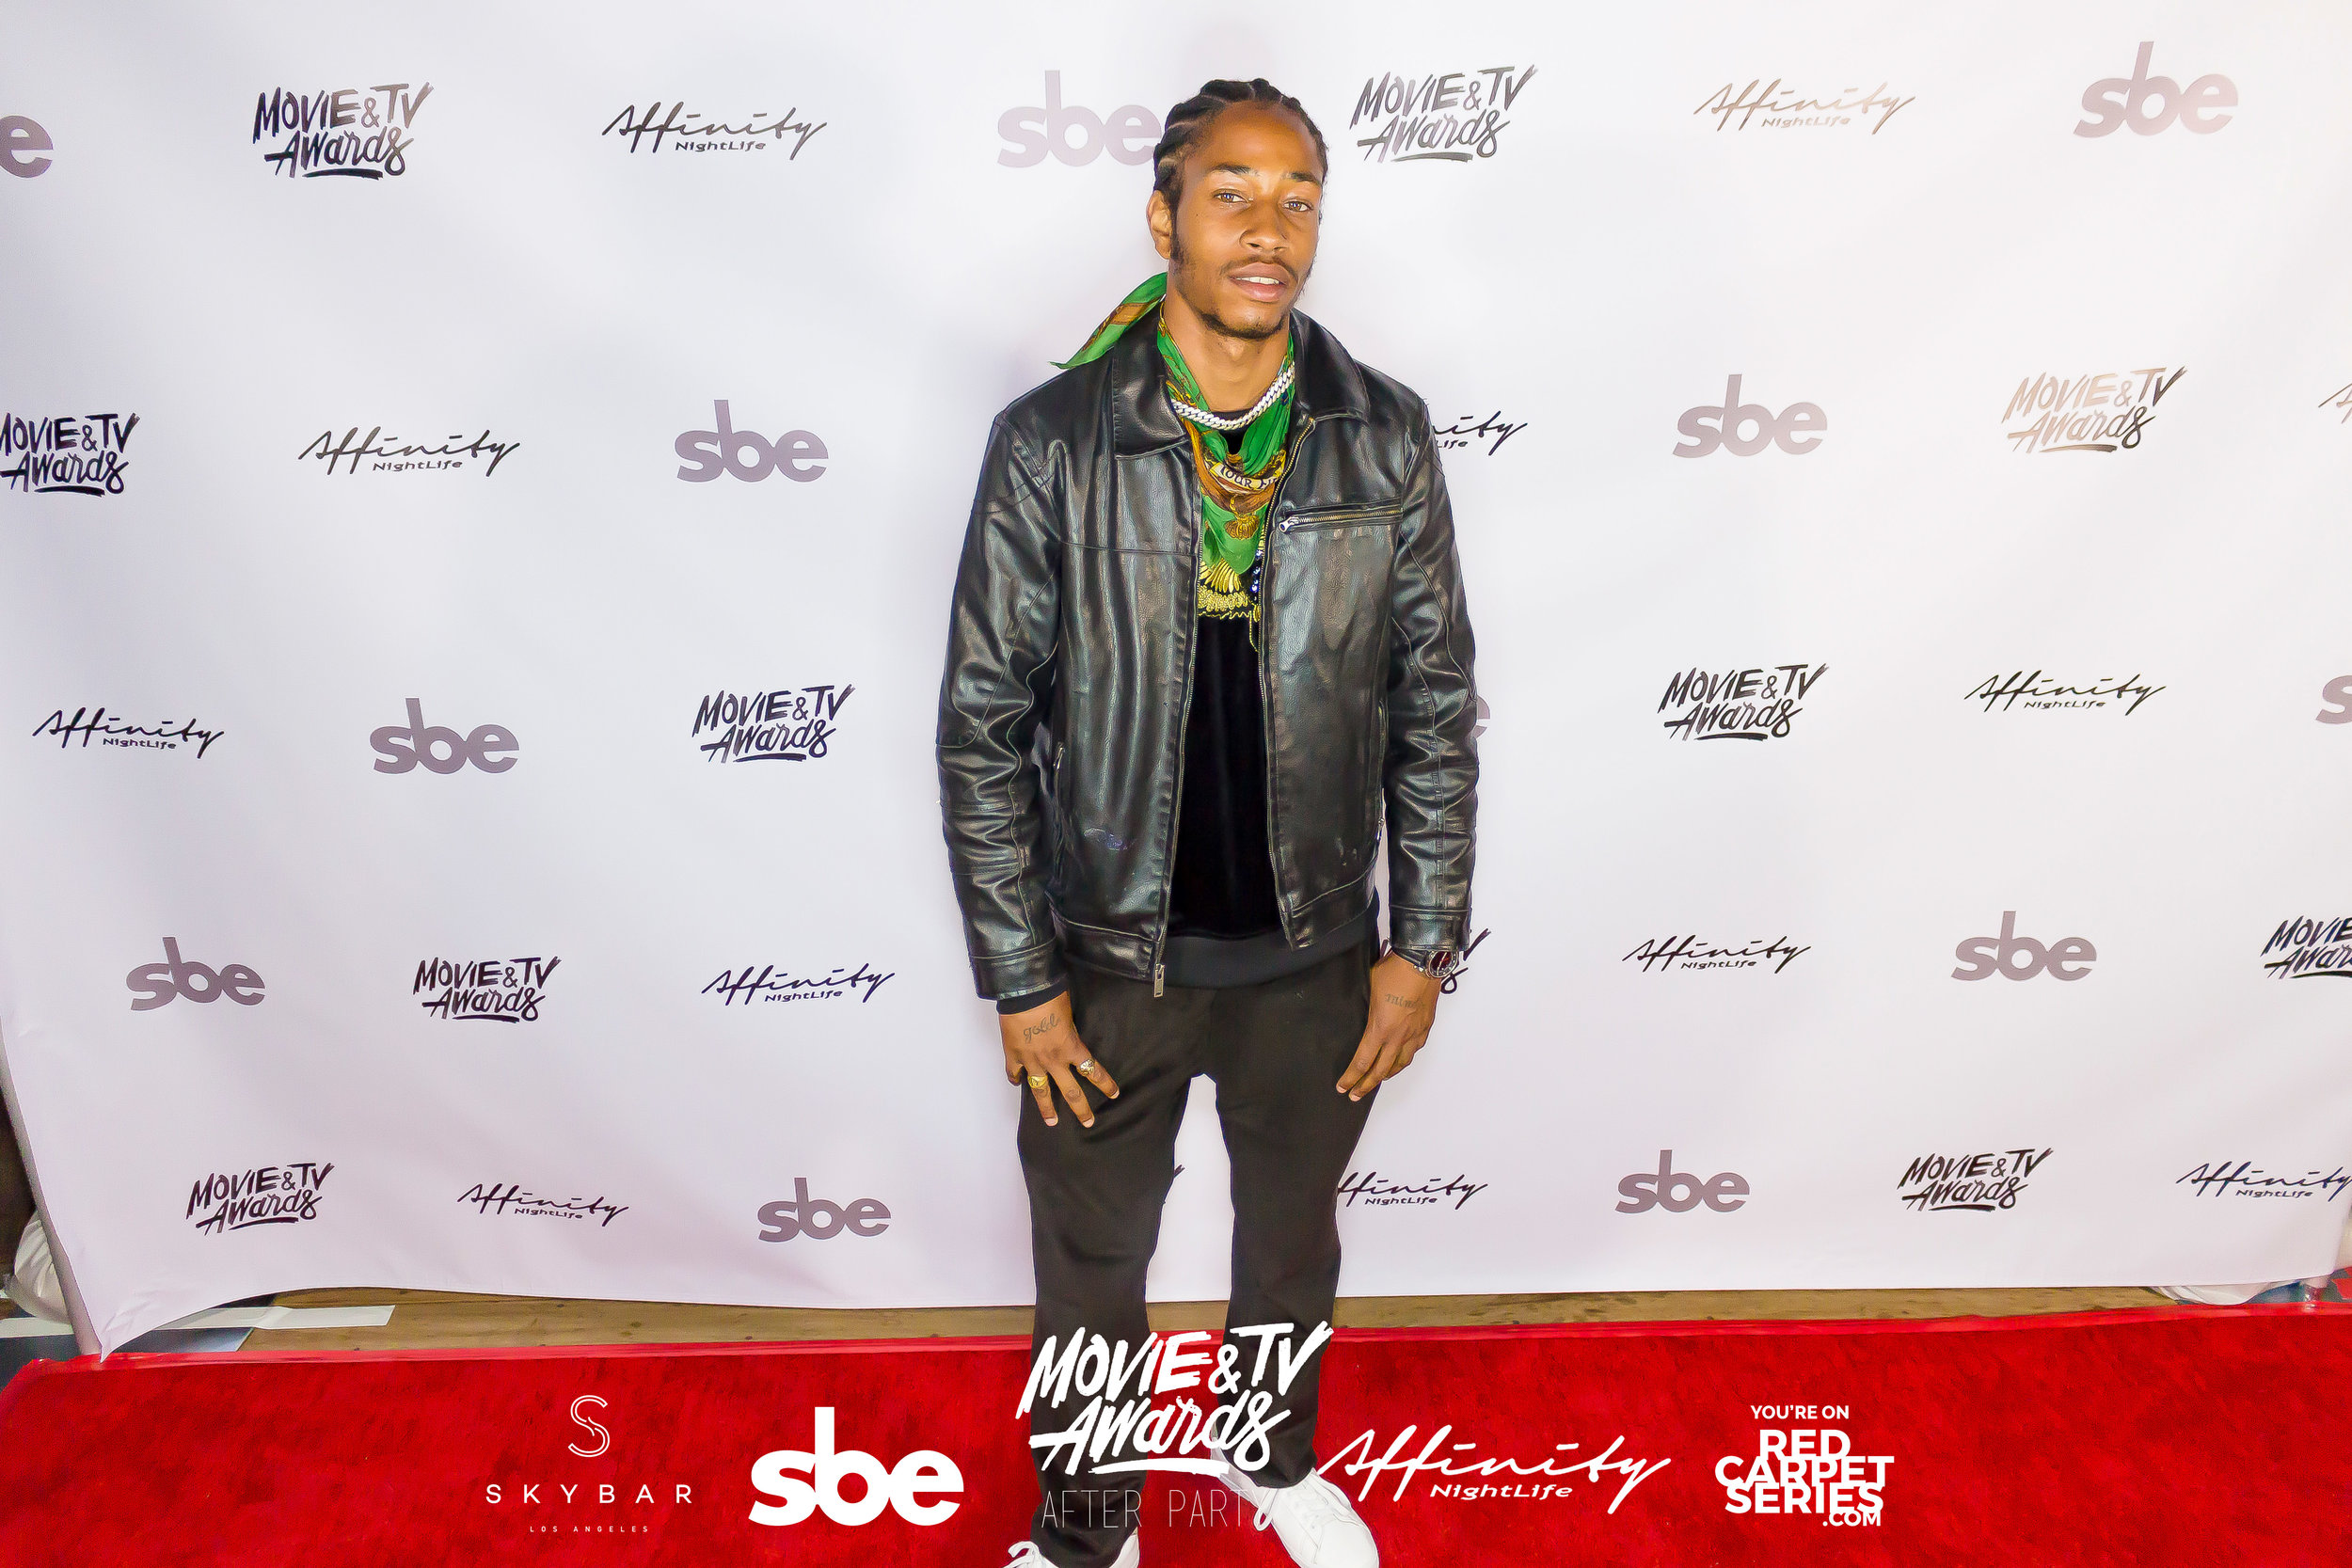 Affinity Nightlife MTV Movie & TV Awards After Party - Skybar at Mondrian - 06-15-19 - Vol. 2_93.jpg